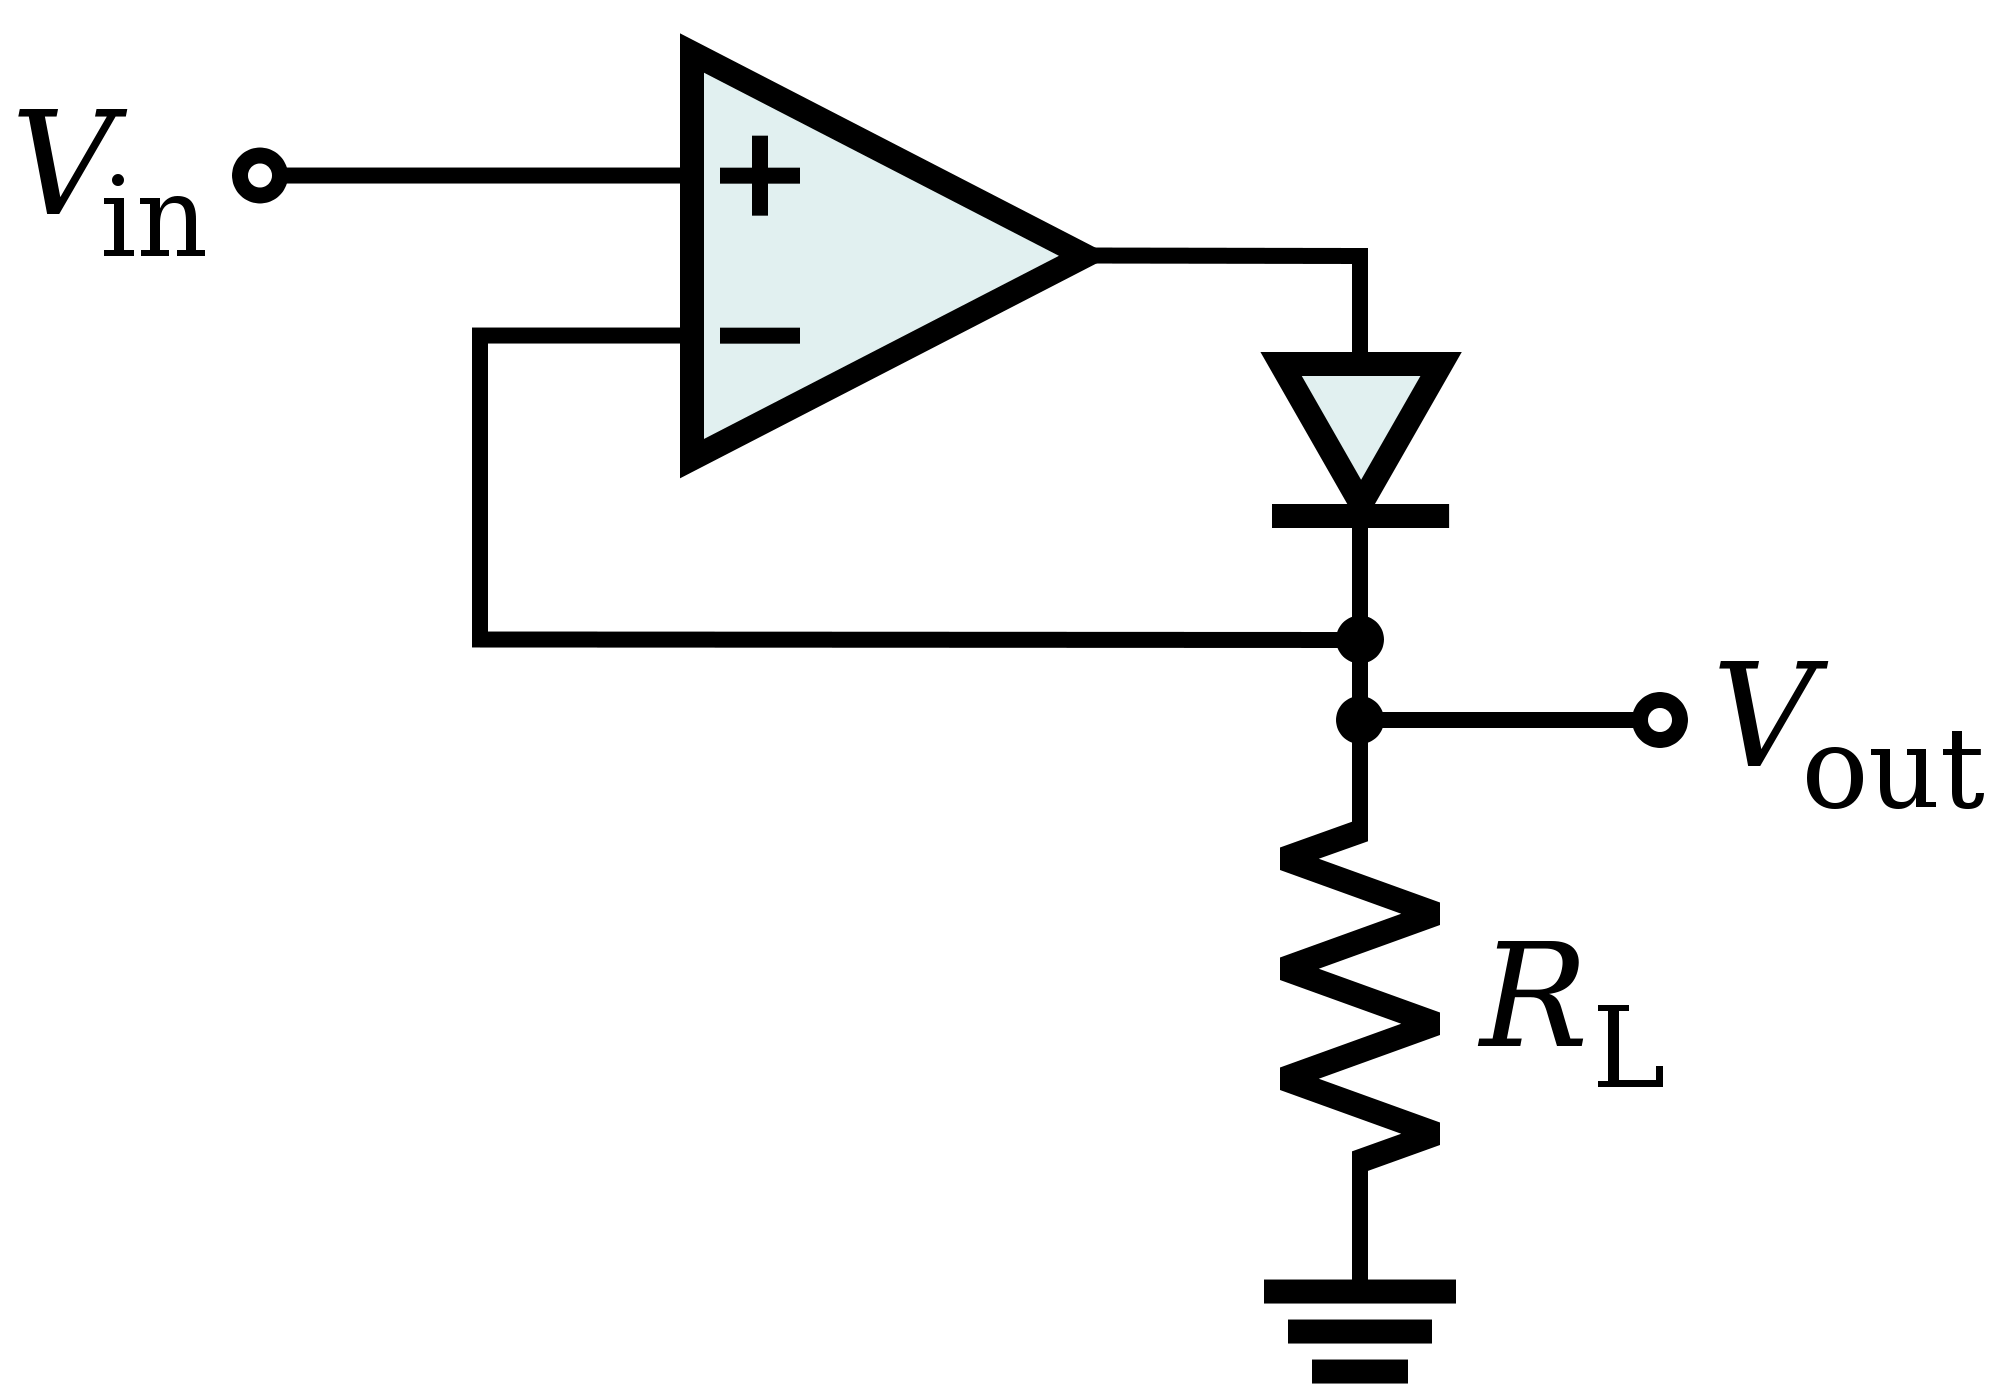 signal diodes in series